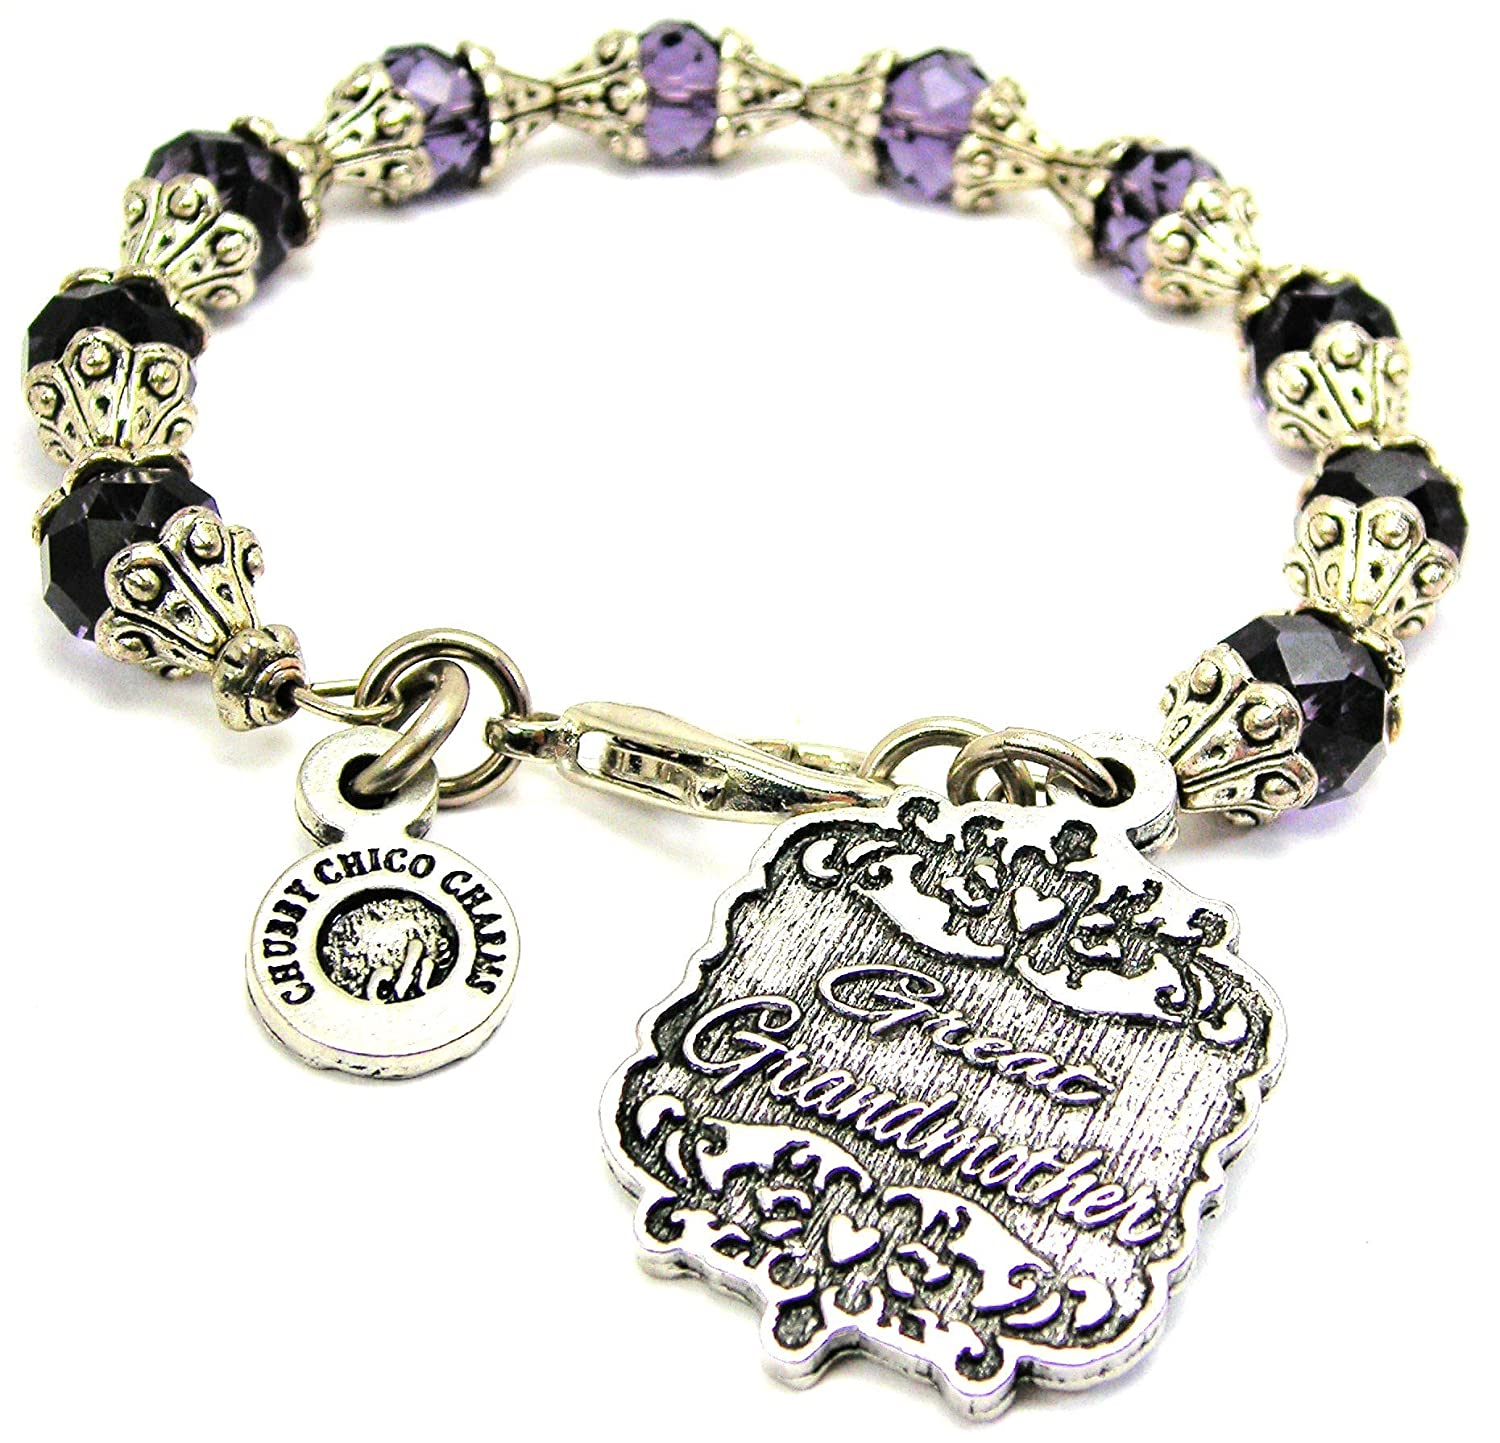 Chubby Chico Charms Great Grandmother Victorian Scroll Capped Crystal Bracelet in Plum Purple